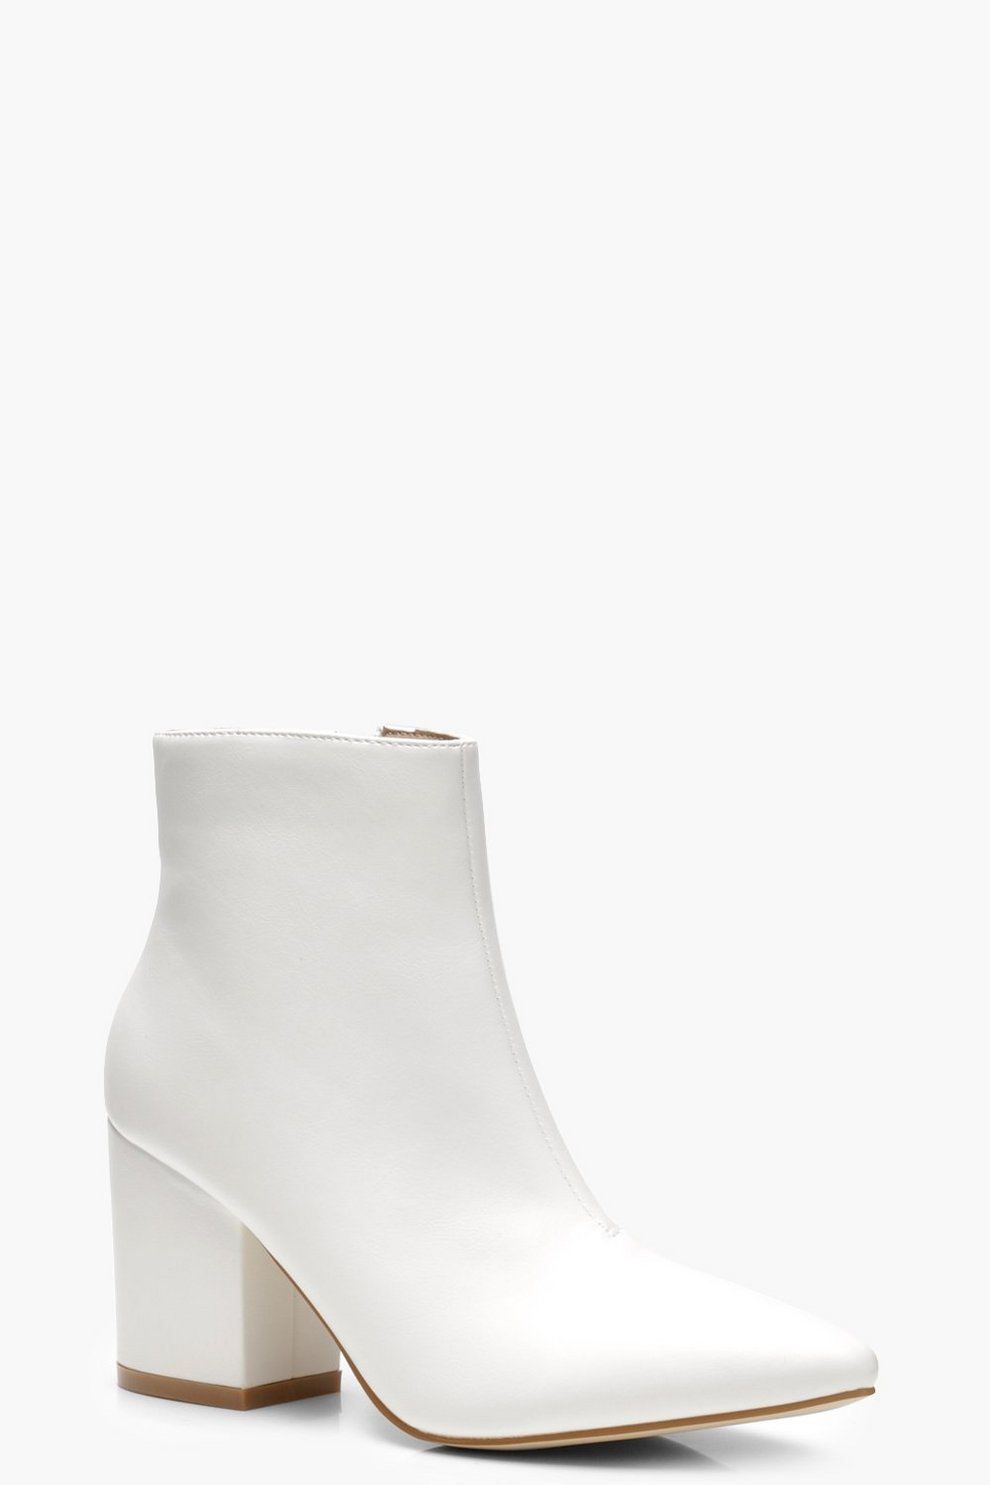 685810ed33 Pointed Toe Block Heel Ankle Shoe Boots | Boohoo